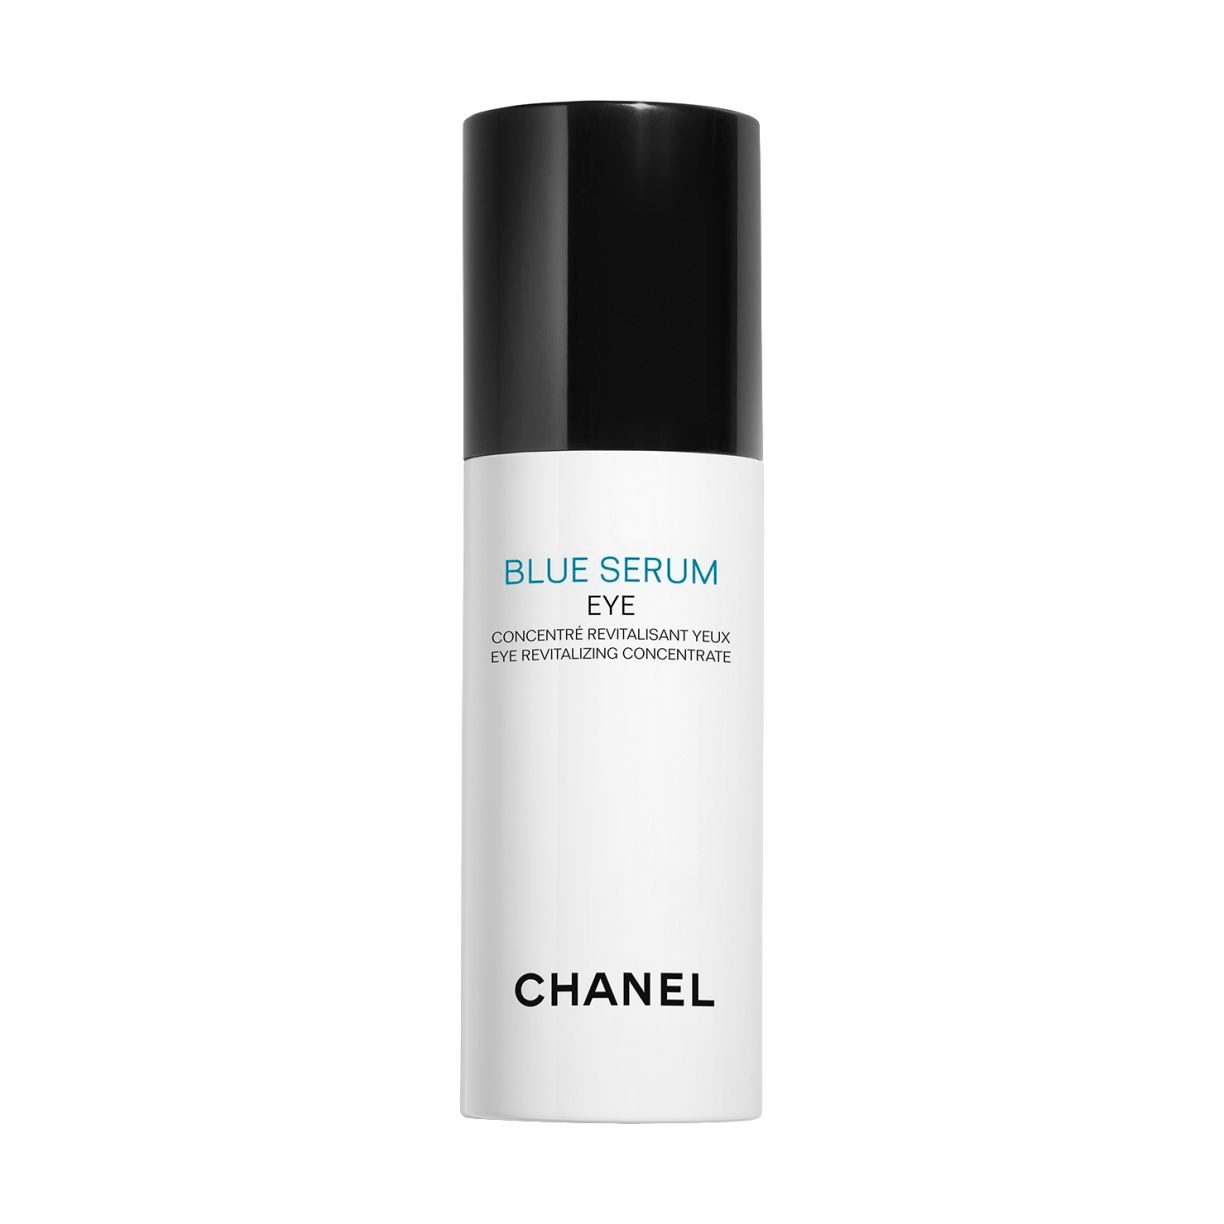 BLUE SERUM EYE LONGEVITY INGREDIENTS FROM DIETS OF THE WORLD'S BLUE ZONES. 15ml